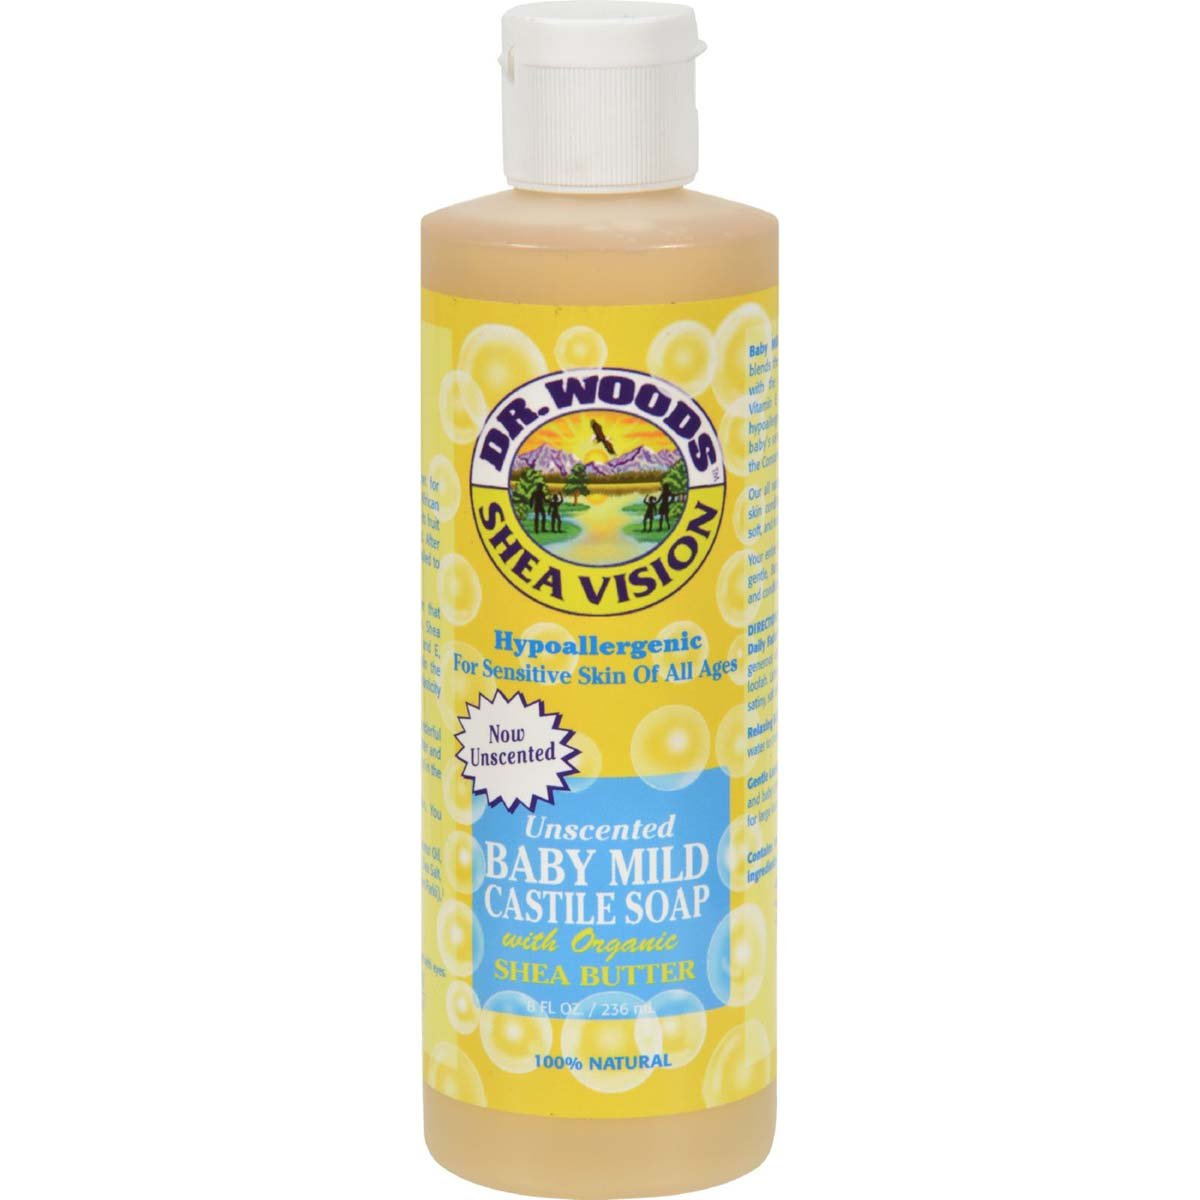 Dr.Woods Products Baby Castile Soap with Shea Butter, Shea Butter 8 Oz Sylvia's Food Products 2900